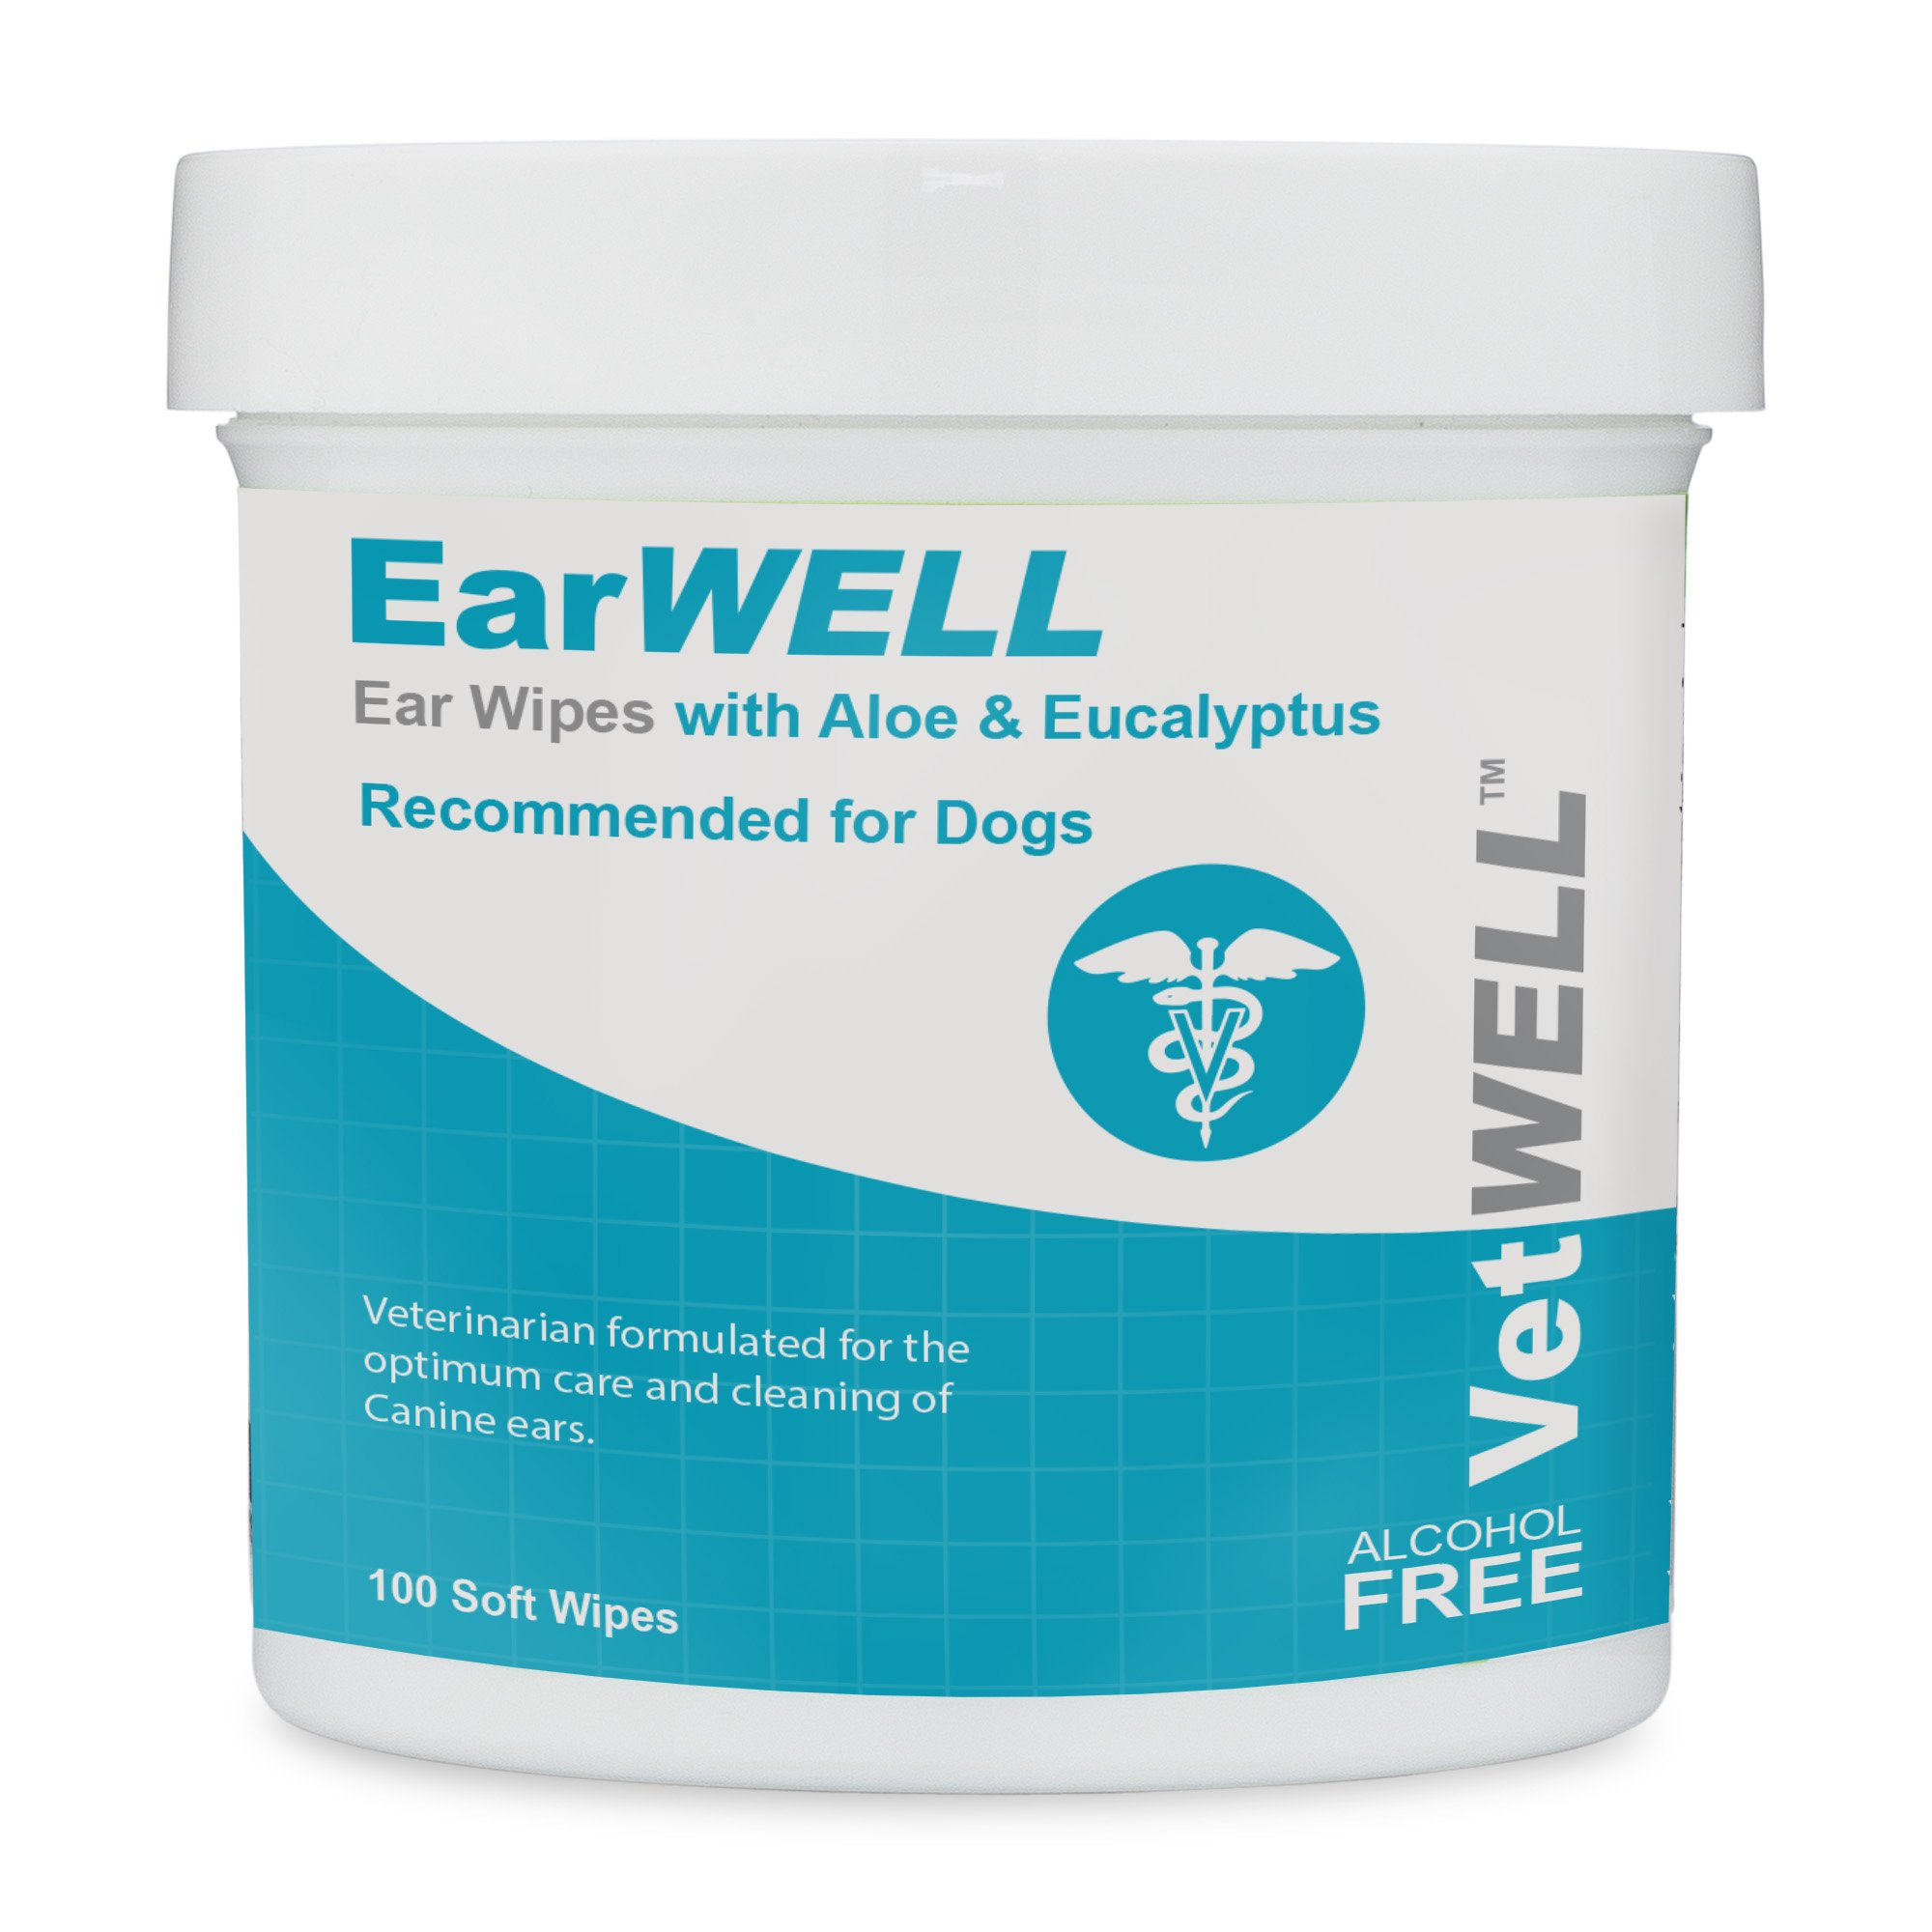 VetWELL Dog Ear Wipes - Otic Cleaning Wipes for Infections and Controlling Yeast, Mites and Odor in Pets - EarWELL 100 Count by VetWELL